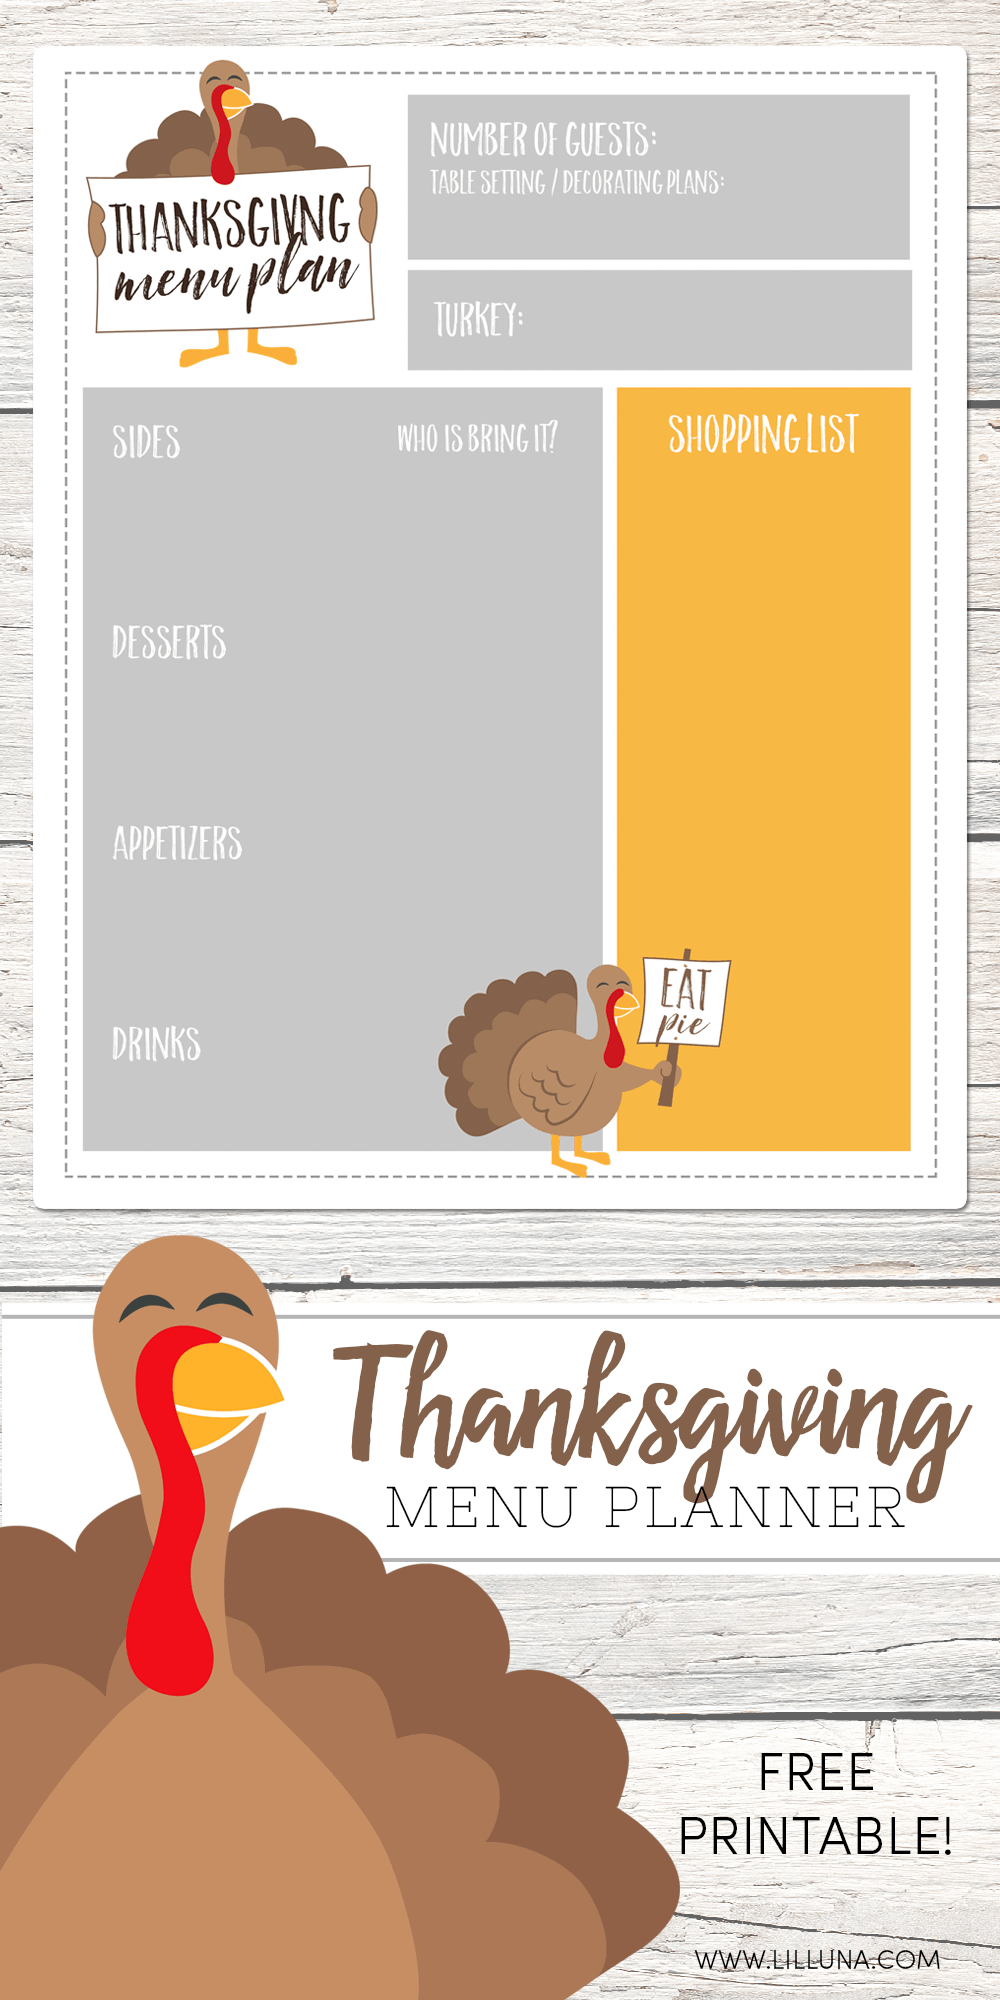 FREE Thanksgiving Menu Planner - so helpful when planning and organizing Turkey Day!